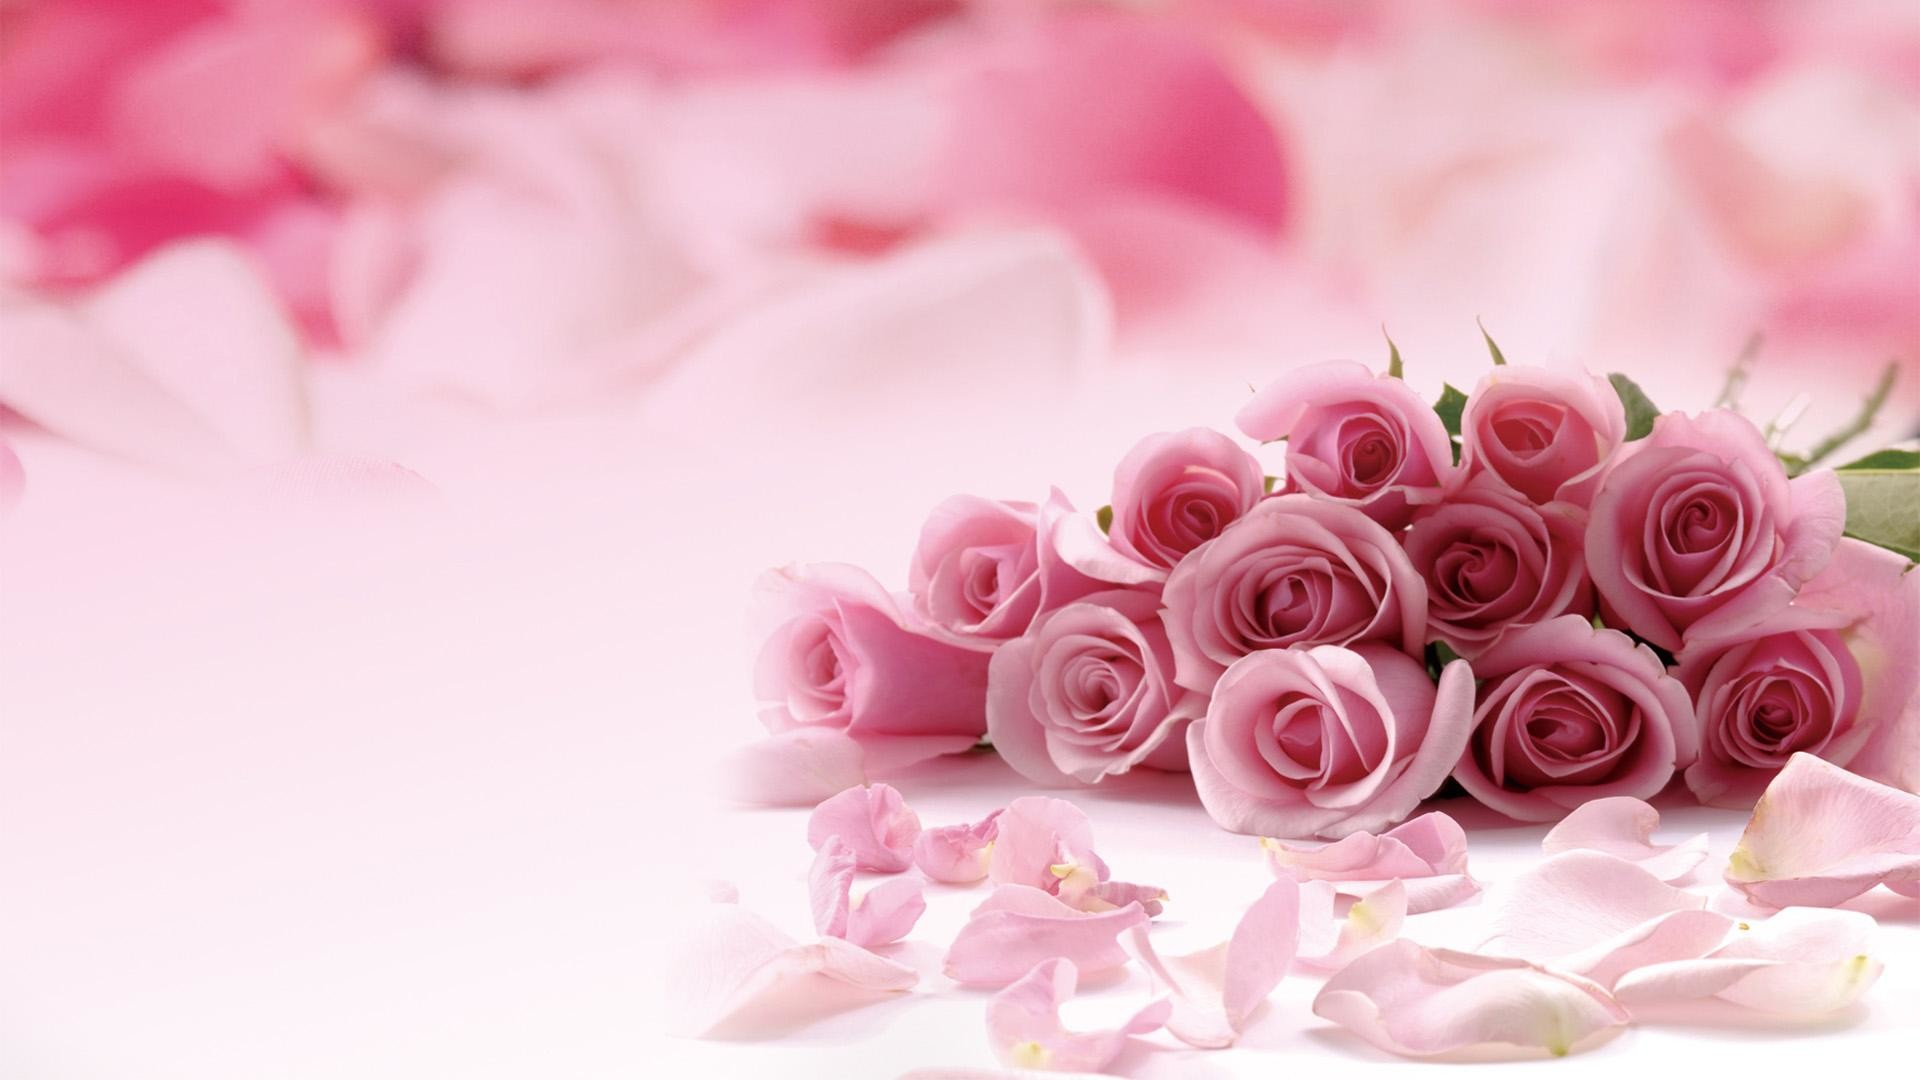 Explore Rose Wallpaper, Pink Candy, and more!